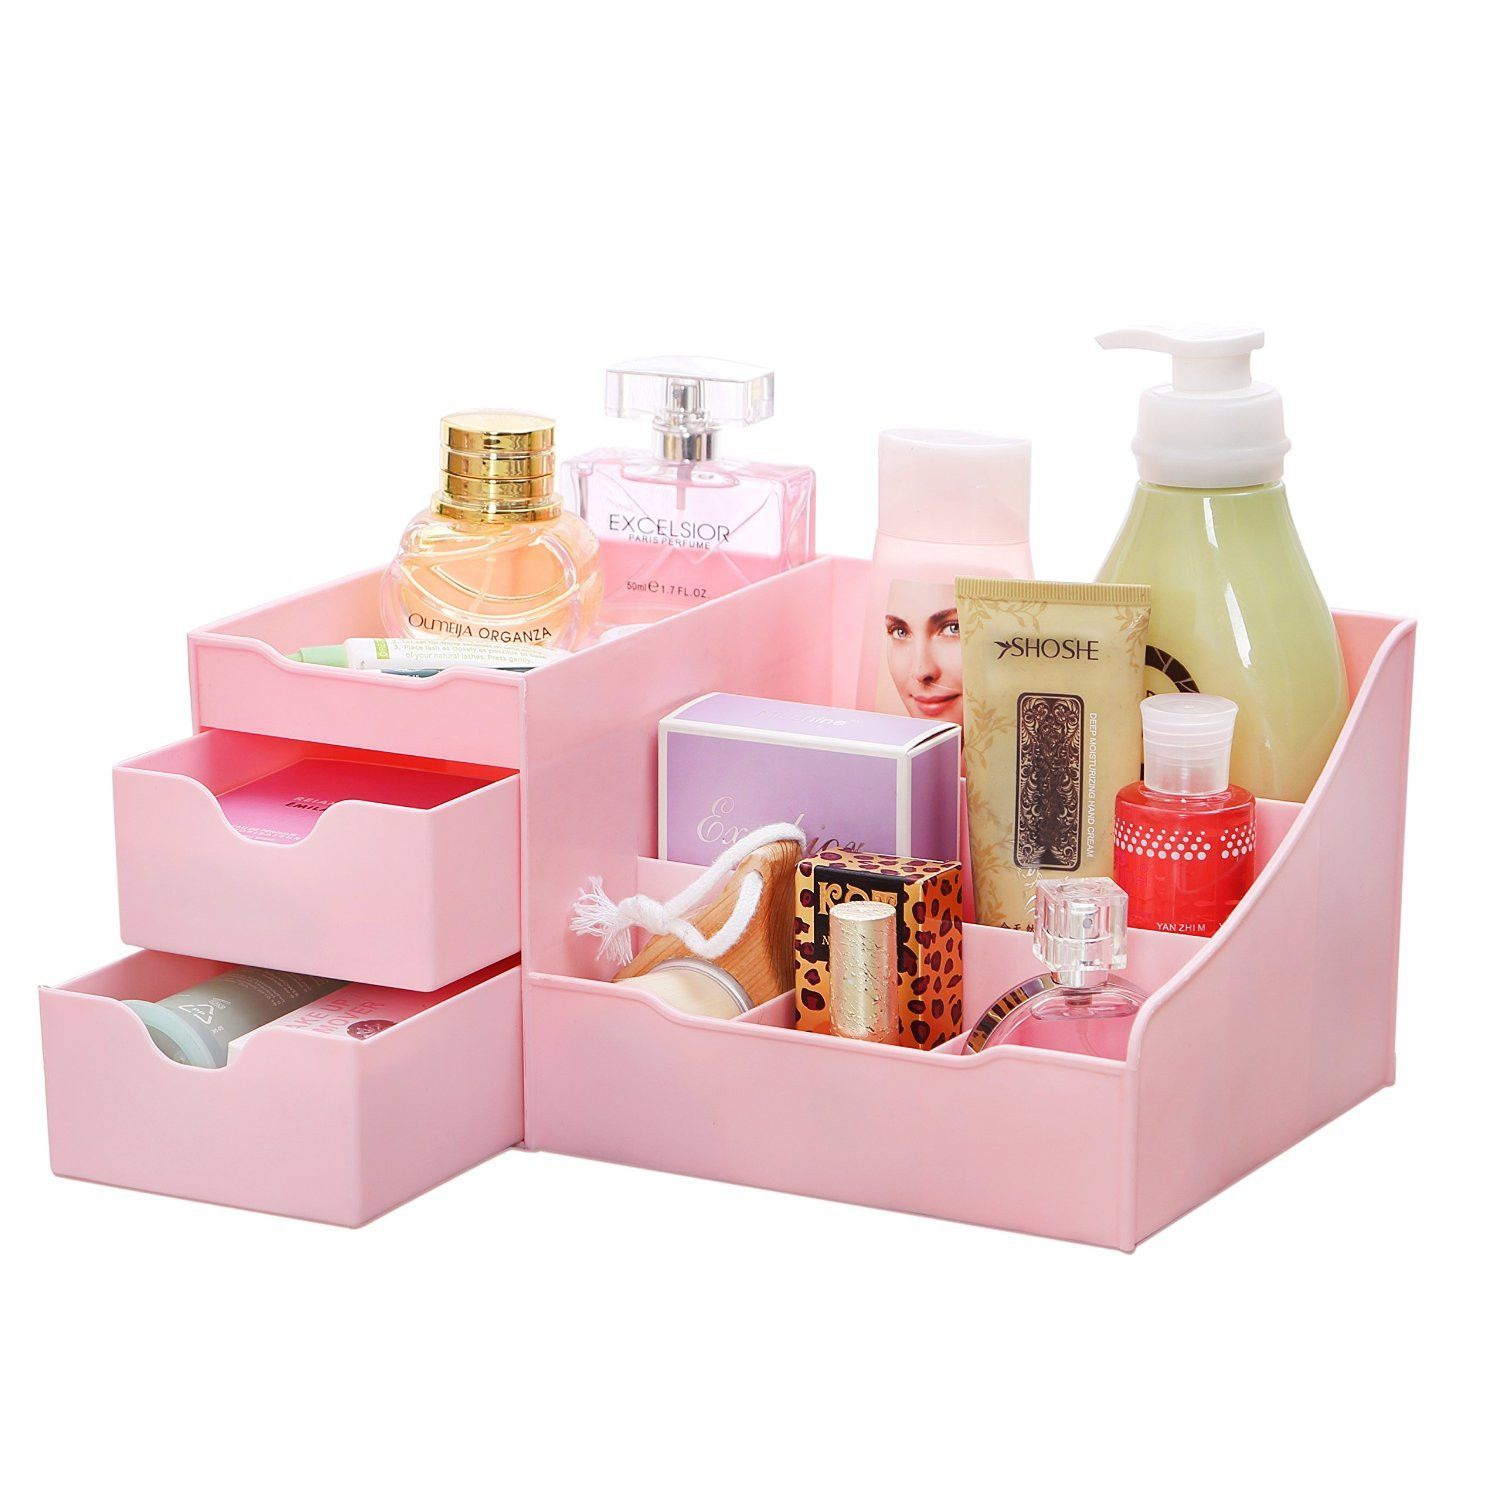 Aufbewahrung Kosmetik Ideen Pink Makeup Cosmetic Accessory Jewelry Organizer With